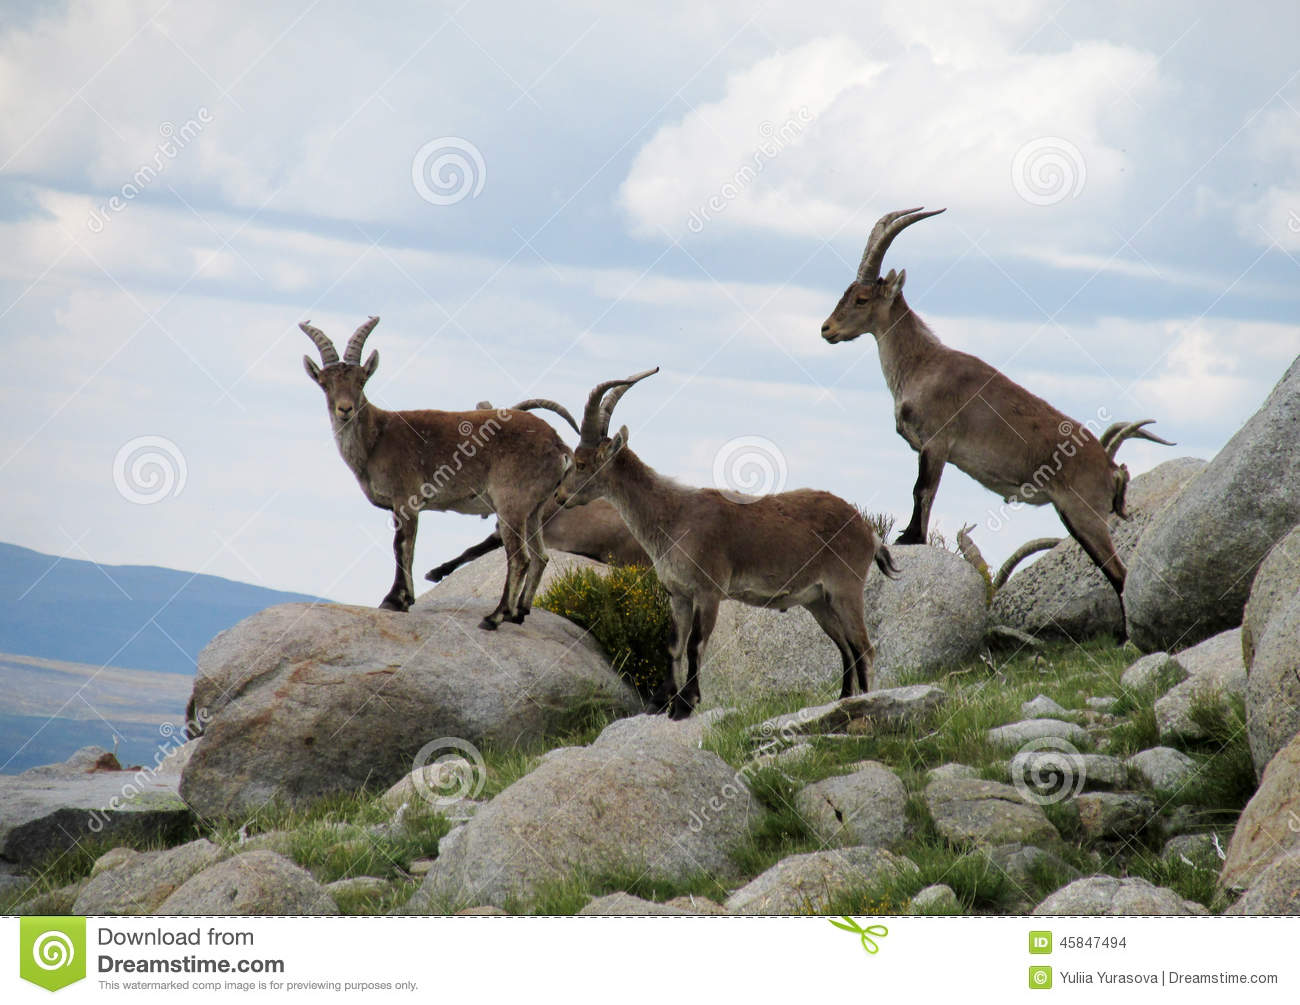 Alpine goats with horns - photo#24